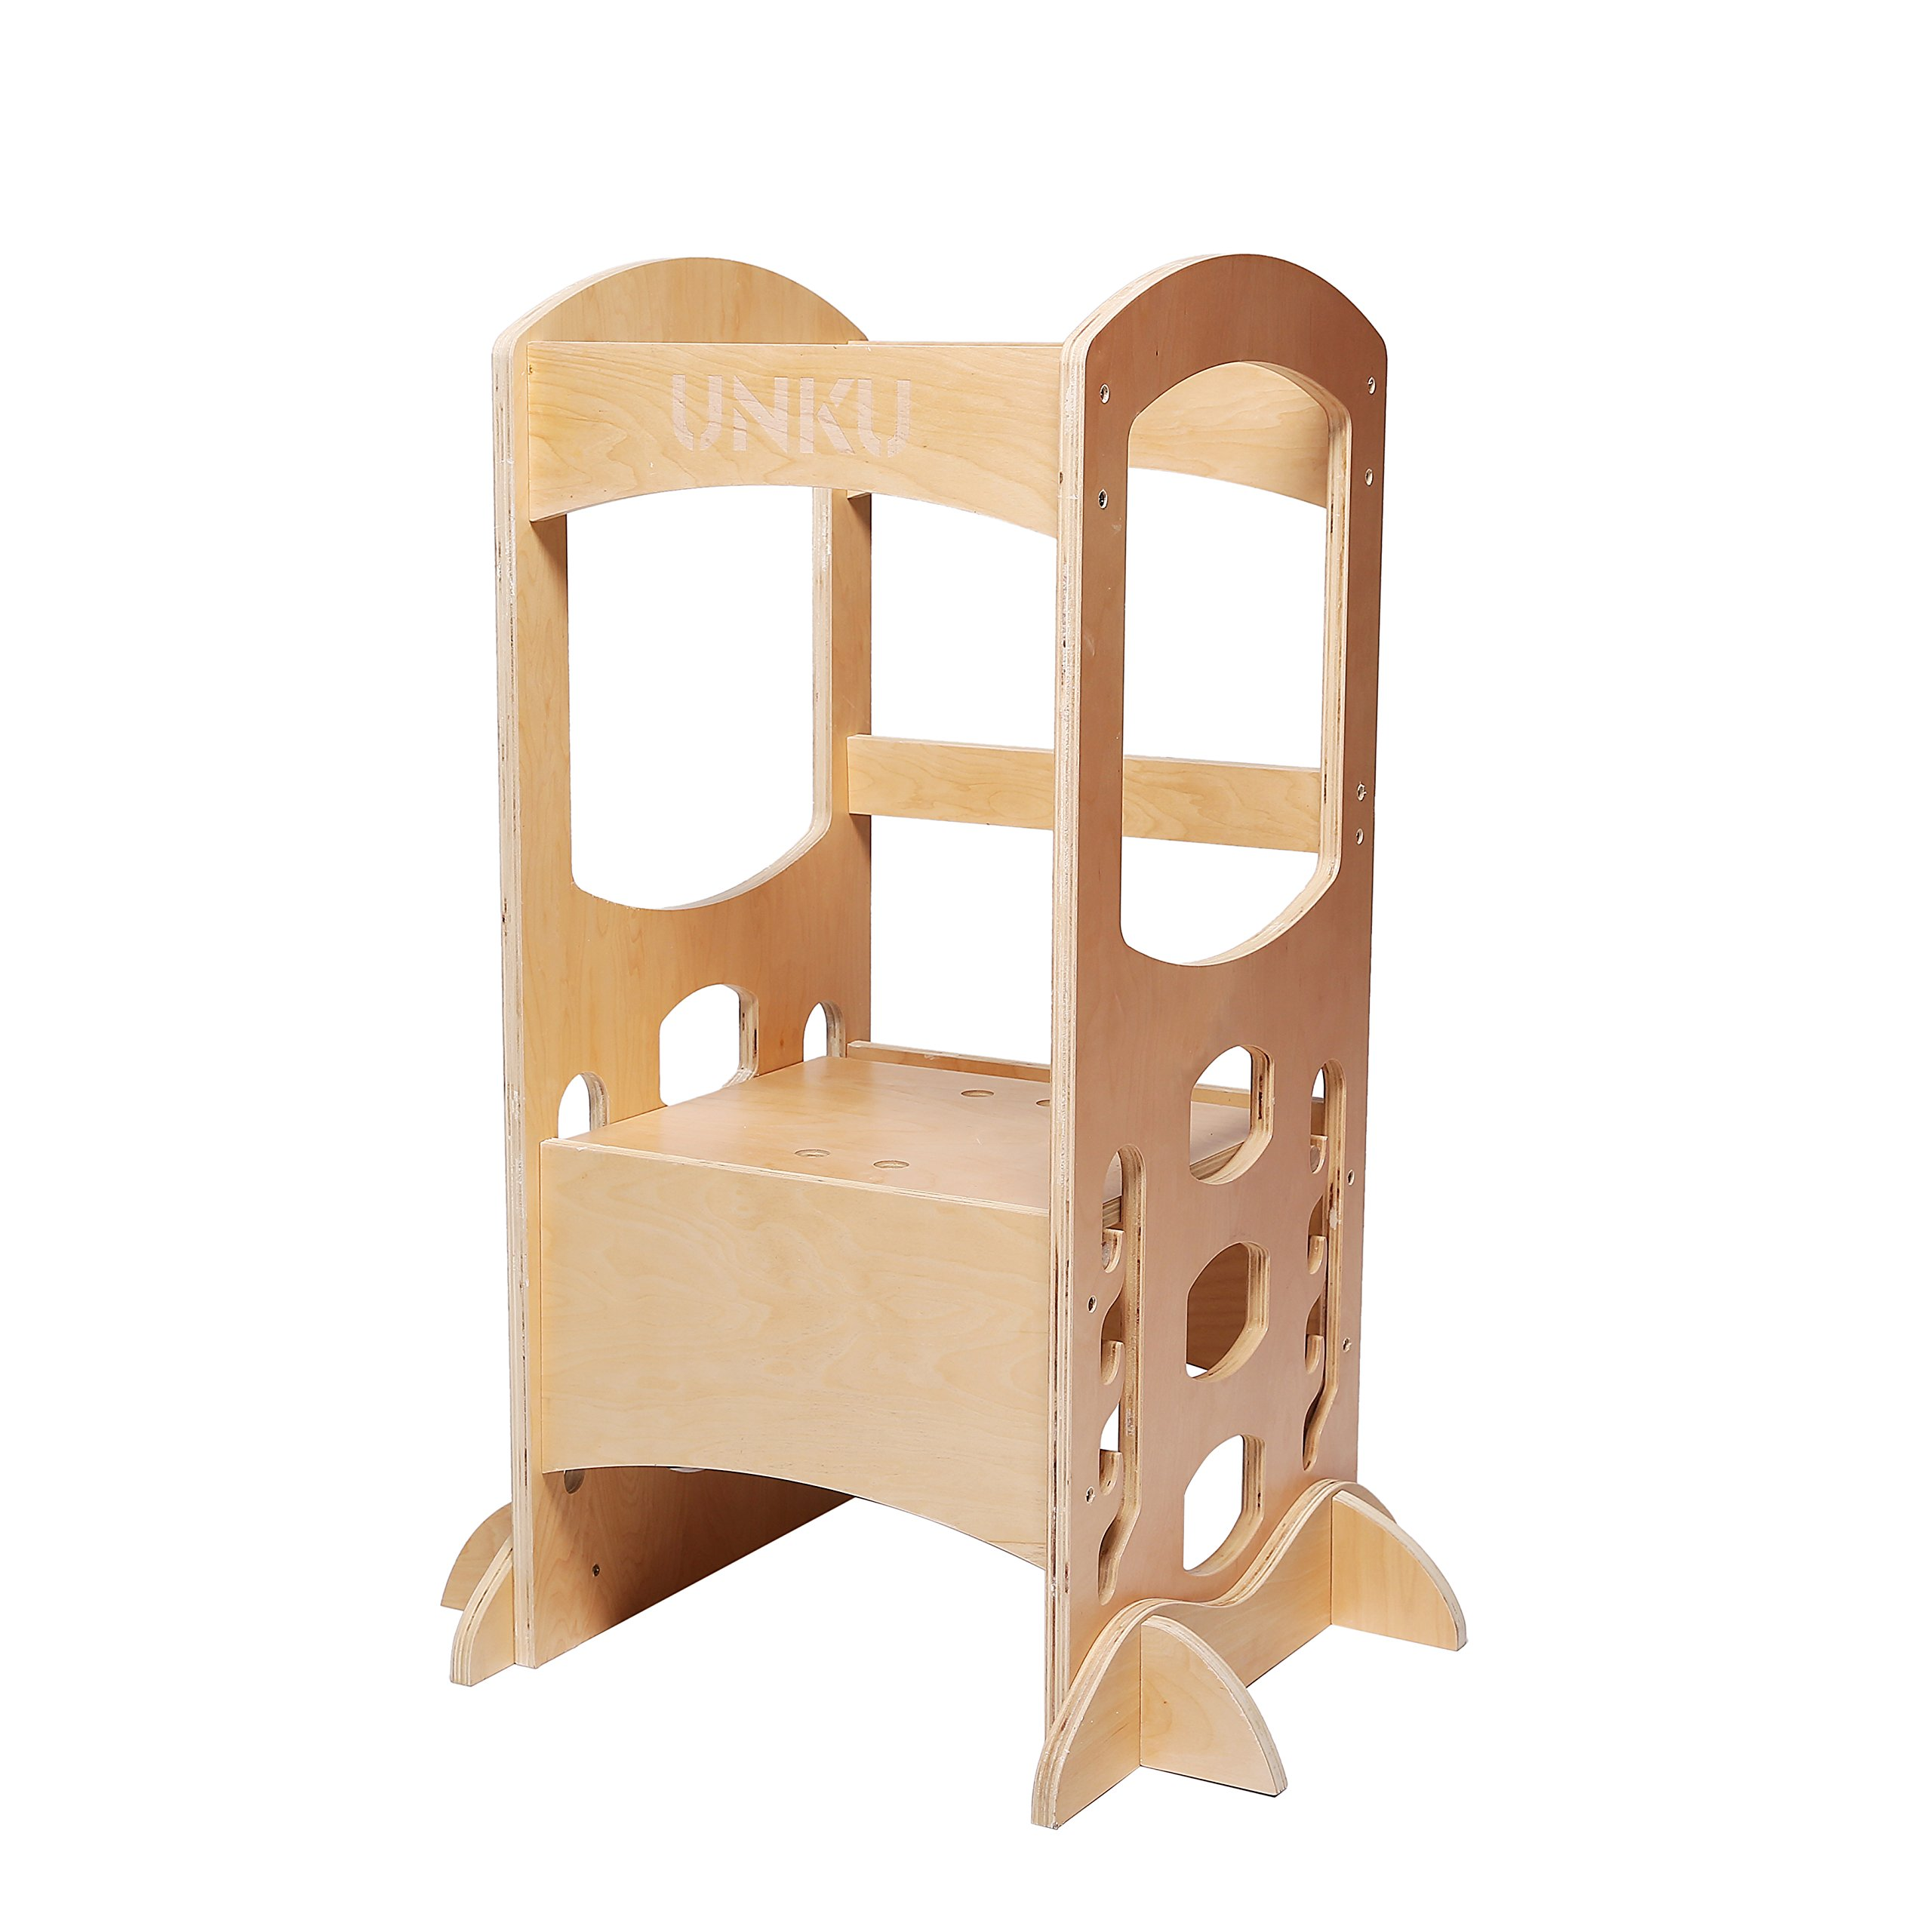 Kitchen Step Stool Little Helper Tower Adjustable Height With Safety Rail (Natural), Perfect for Toddlers